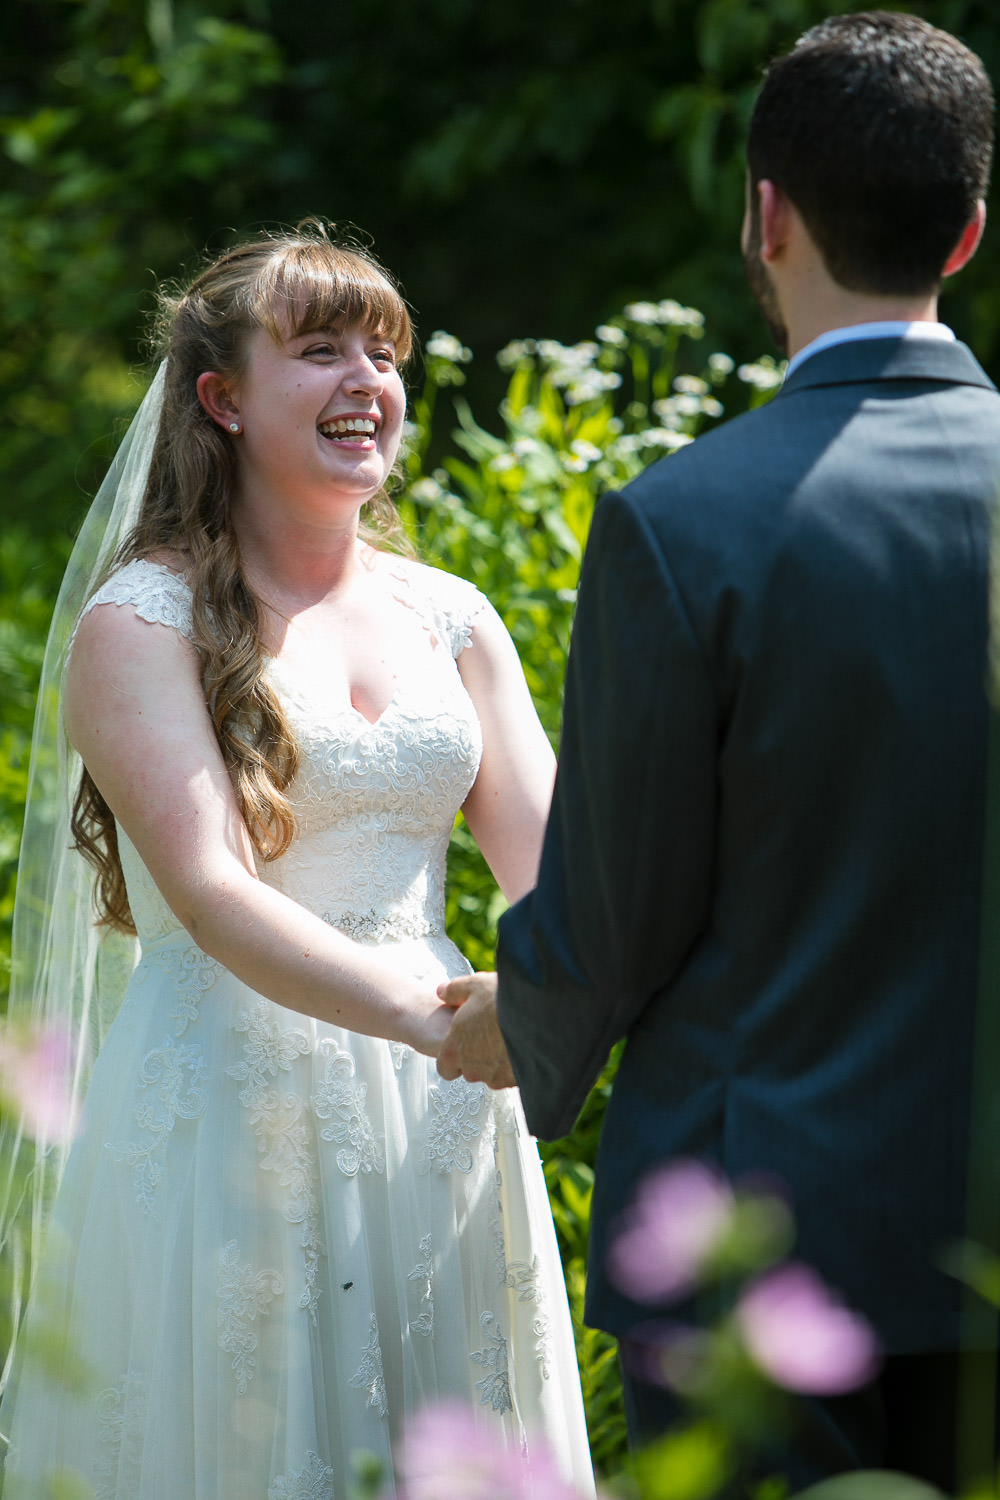 hartmans herb farm weddings, candid moment during a wedding ceremony, bride laughing